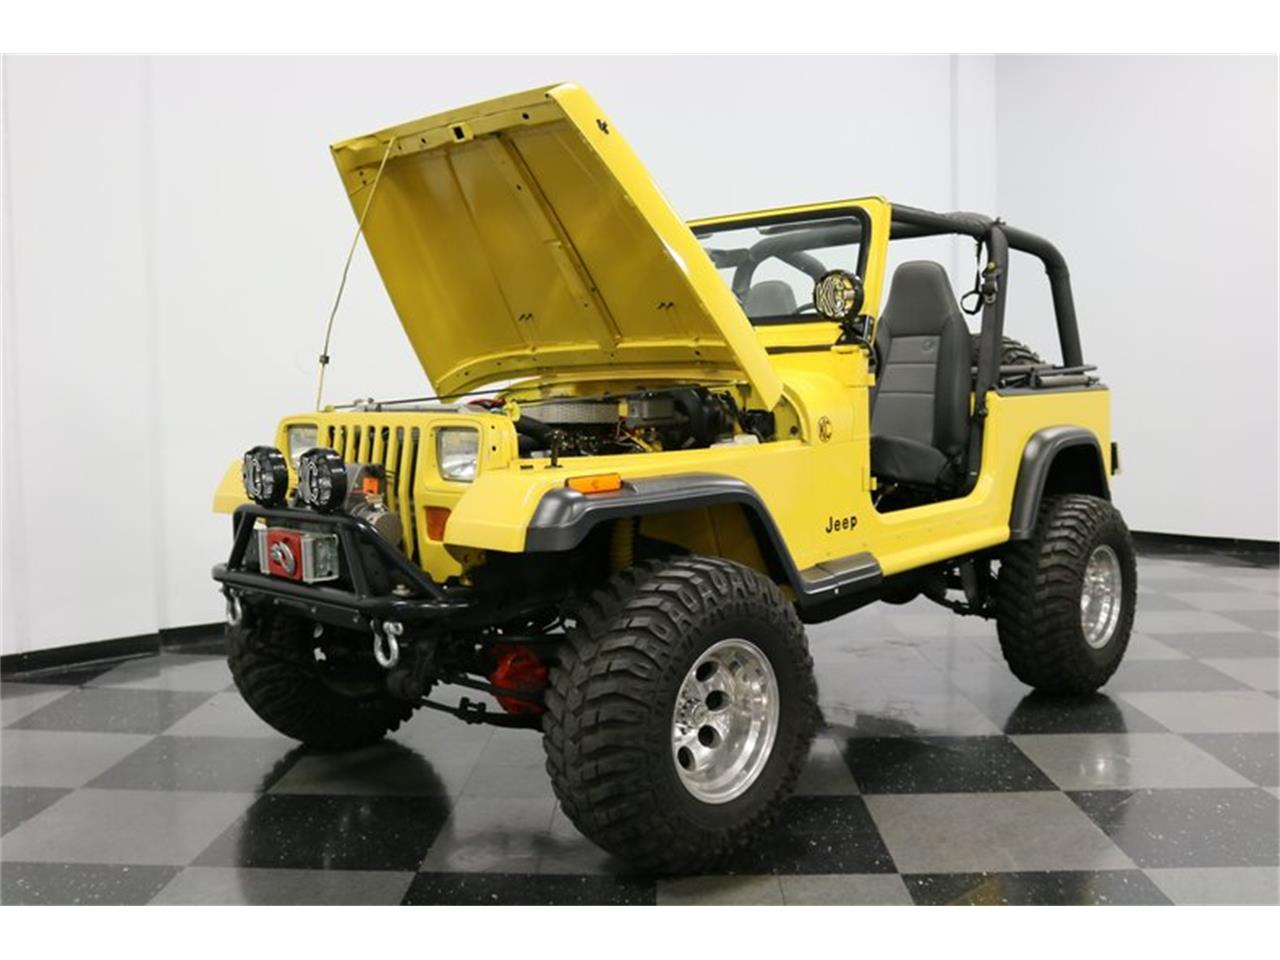 Large Picture of 1993 Jeep Wrangler Offered by Streetside Classics - Dallas / Fort Worth - P701